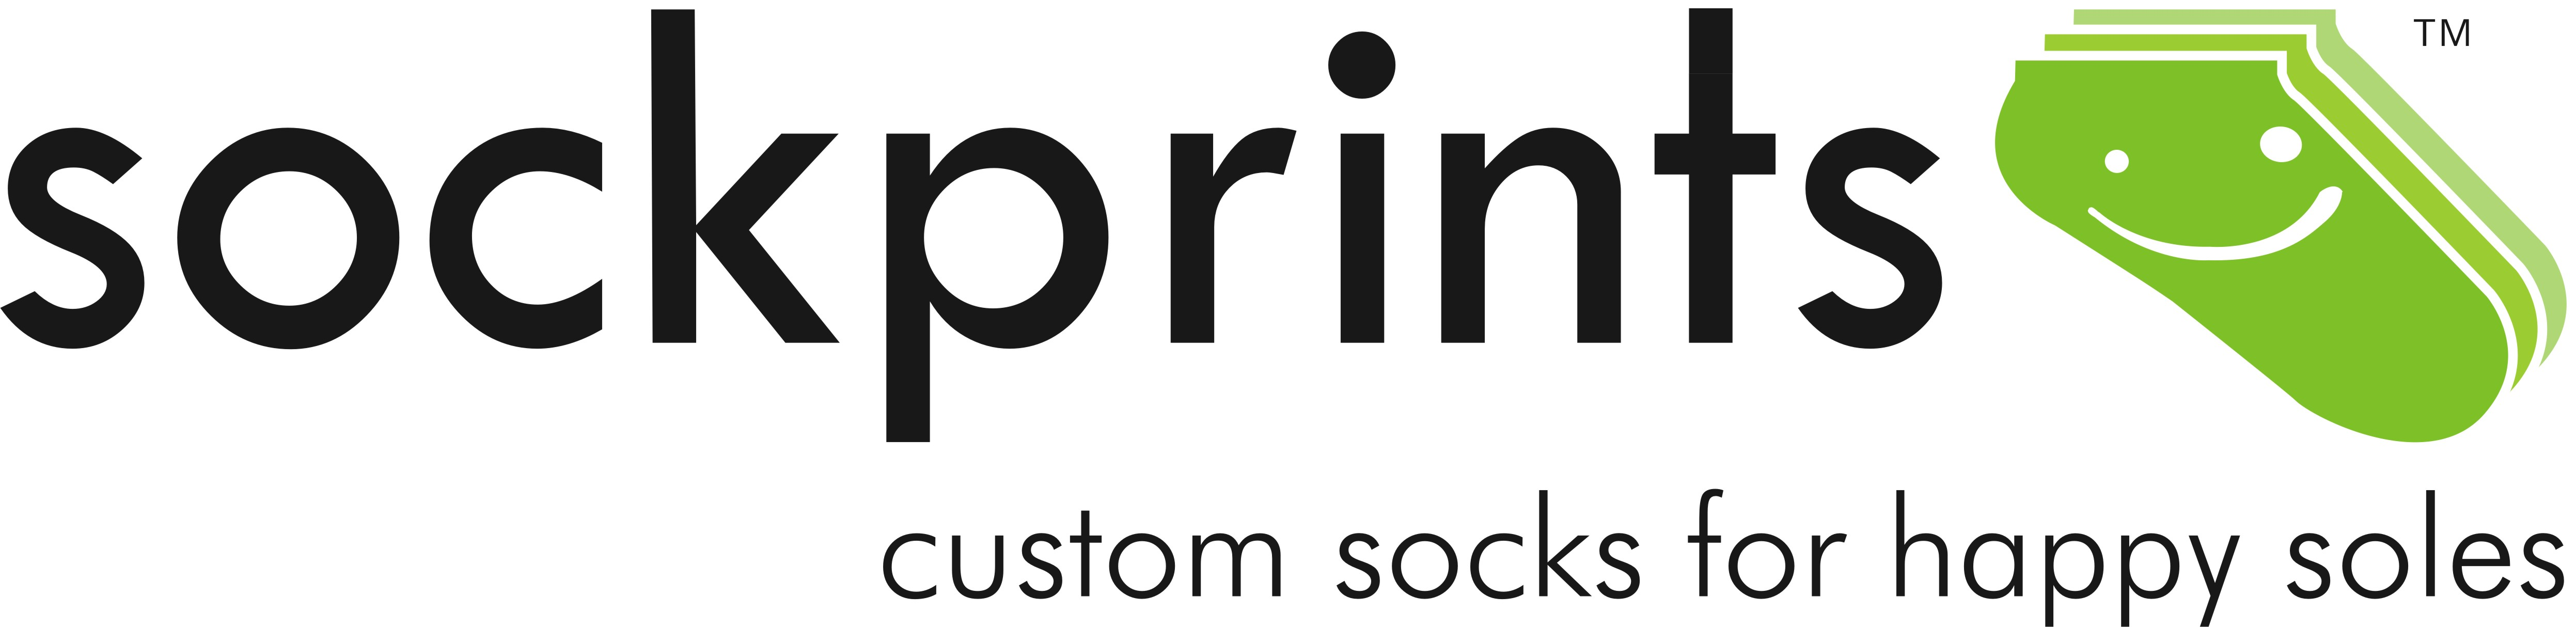 New Customizable Sock Designs for Halloween Holidays Unveiled at Atlant